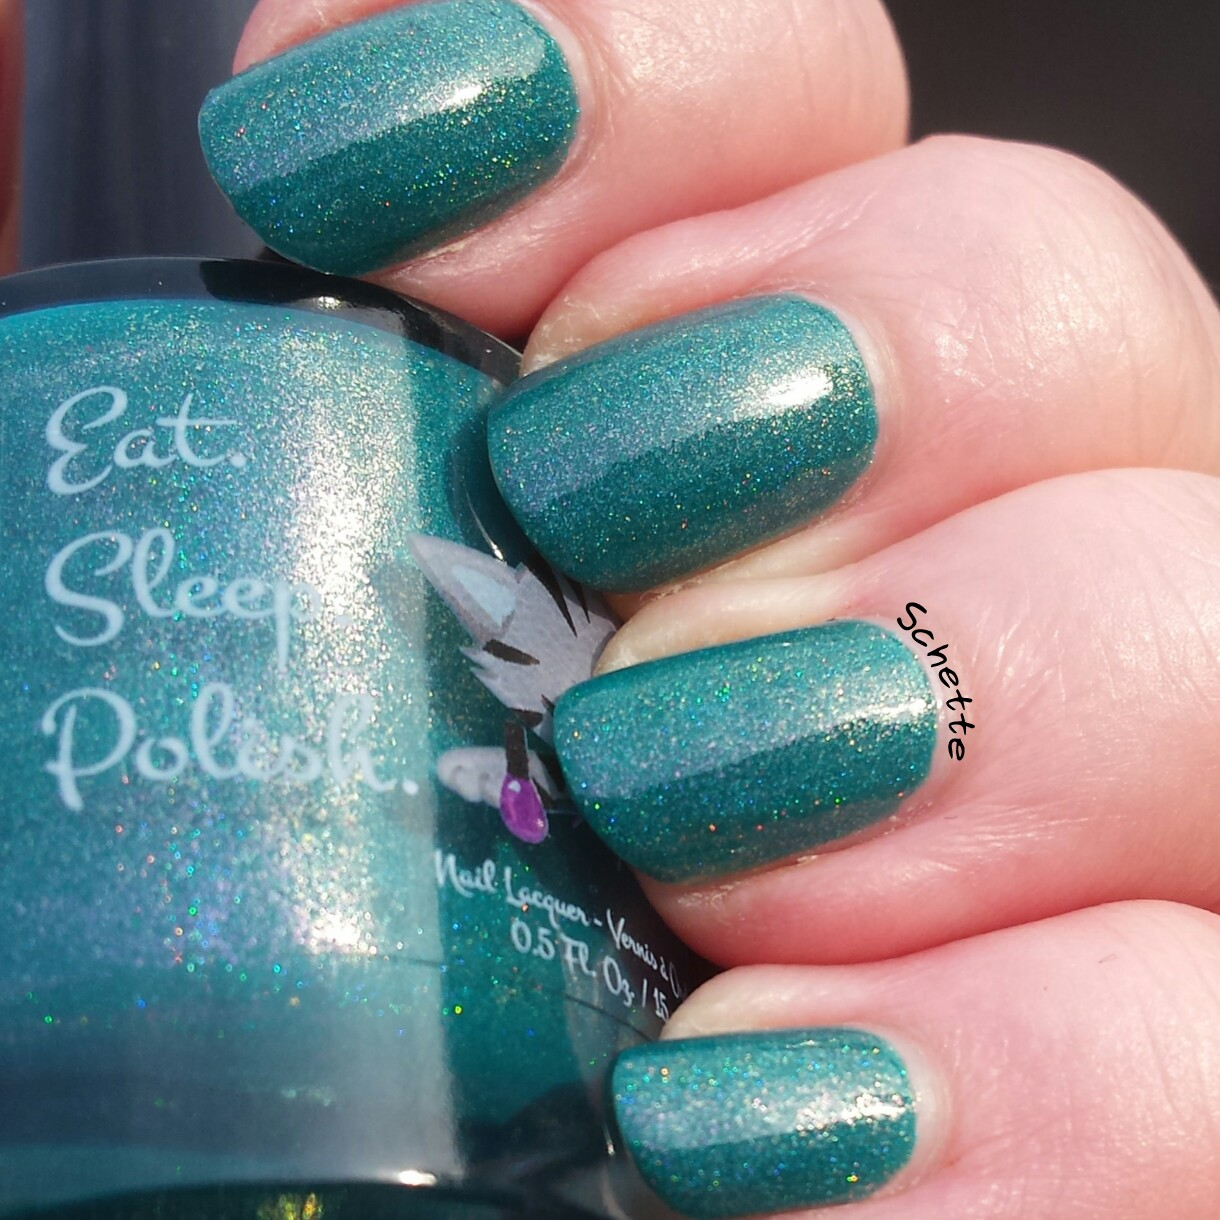 Eat Sleep Polish : Doris the Dorado